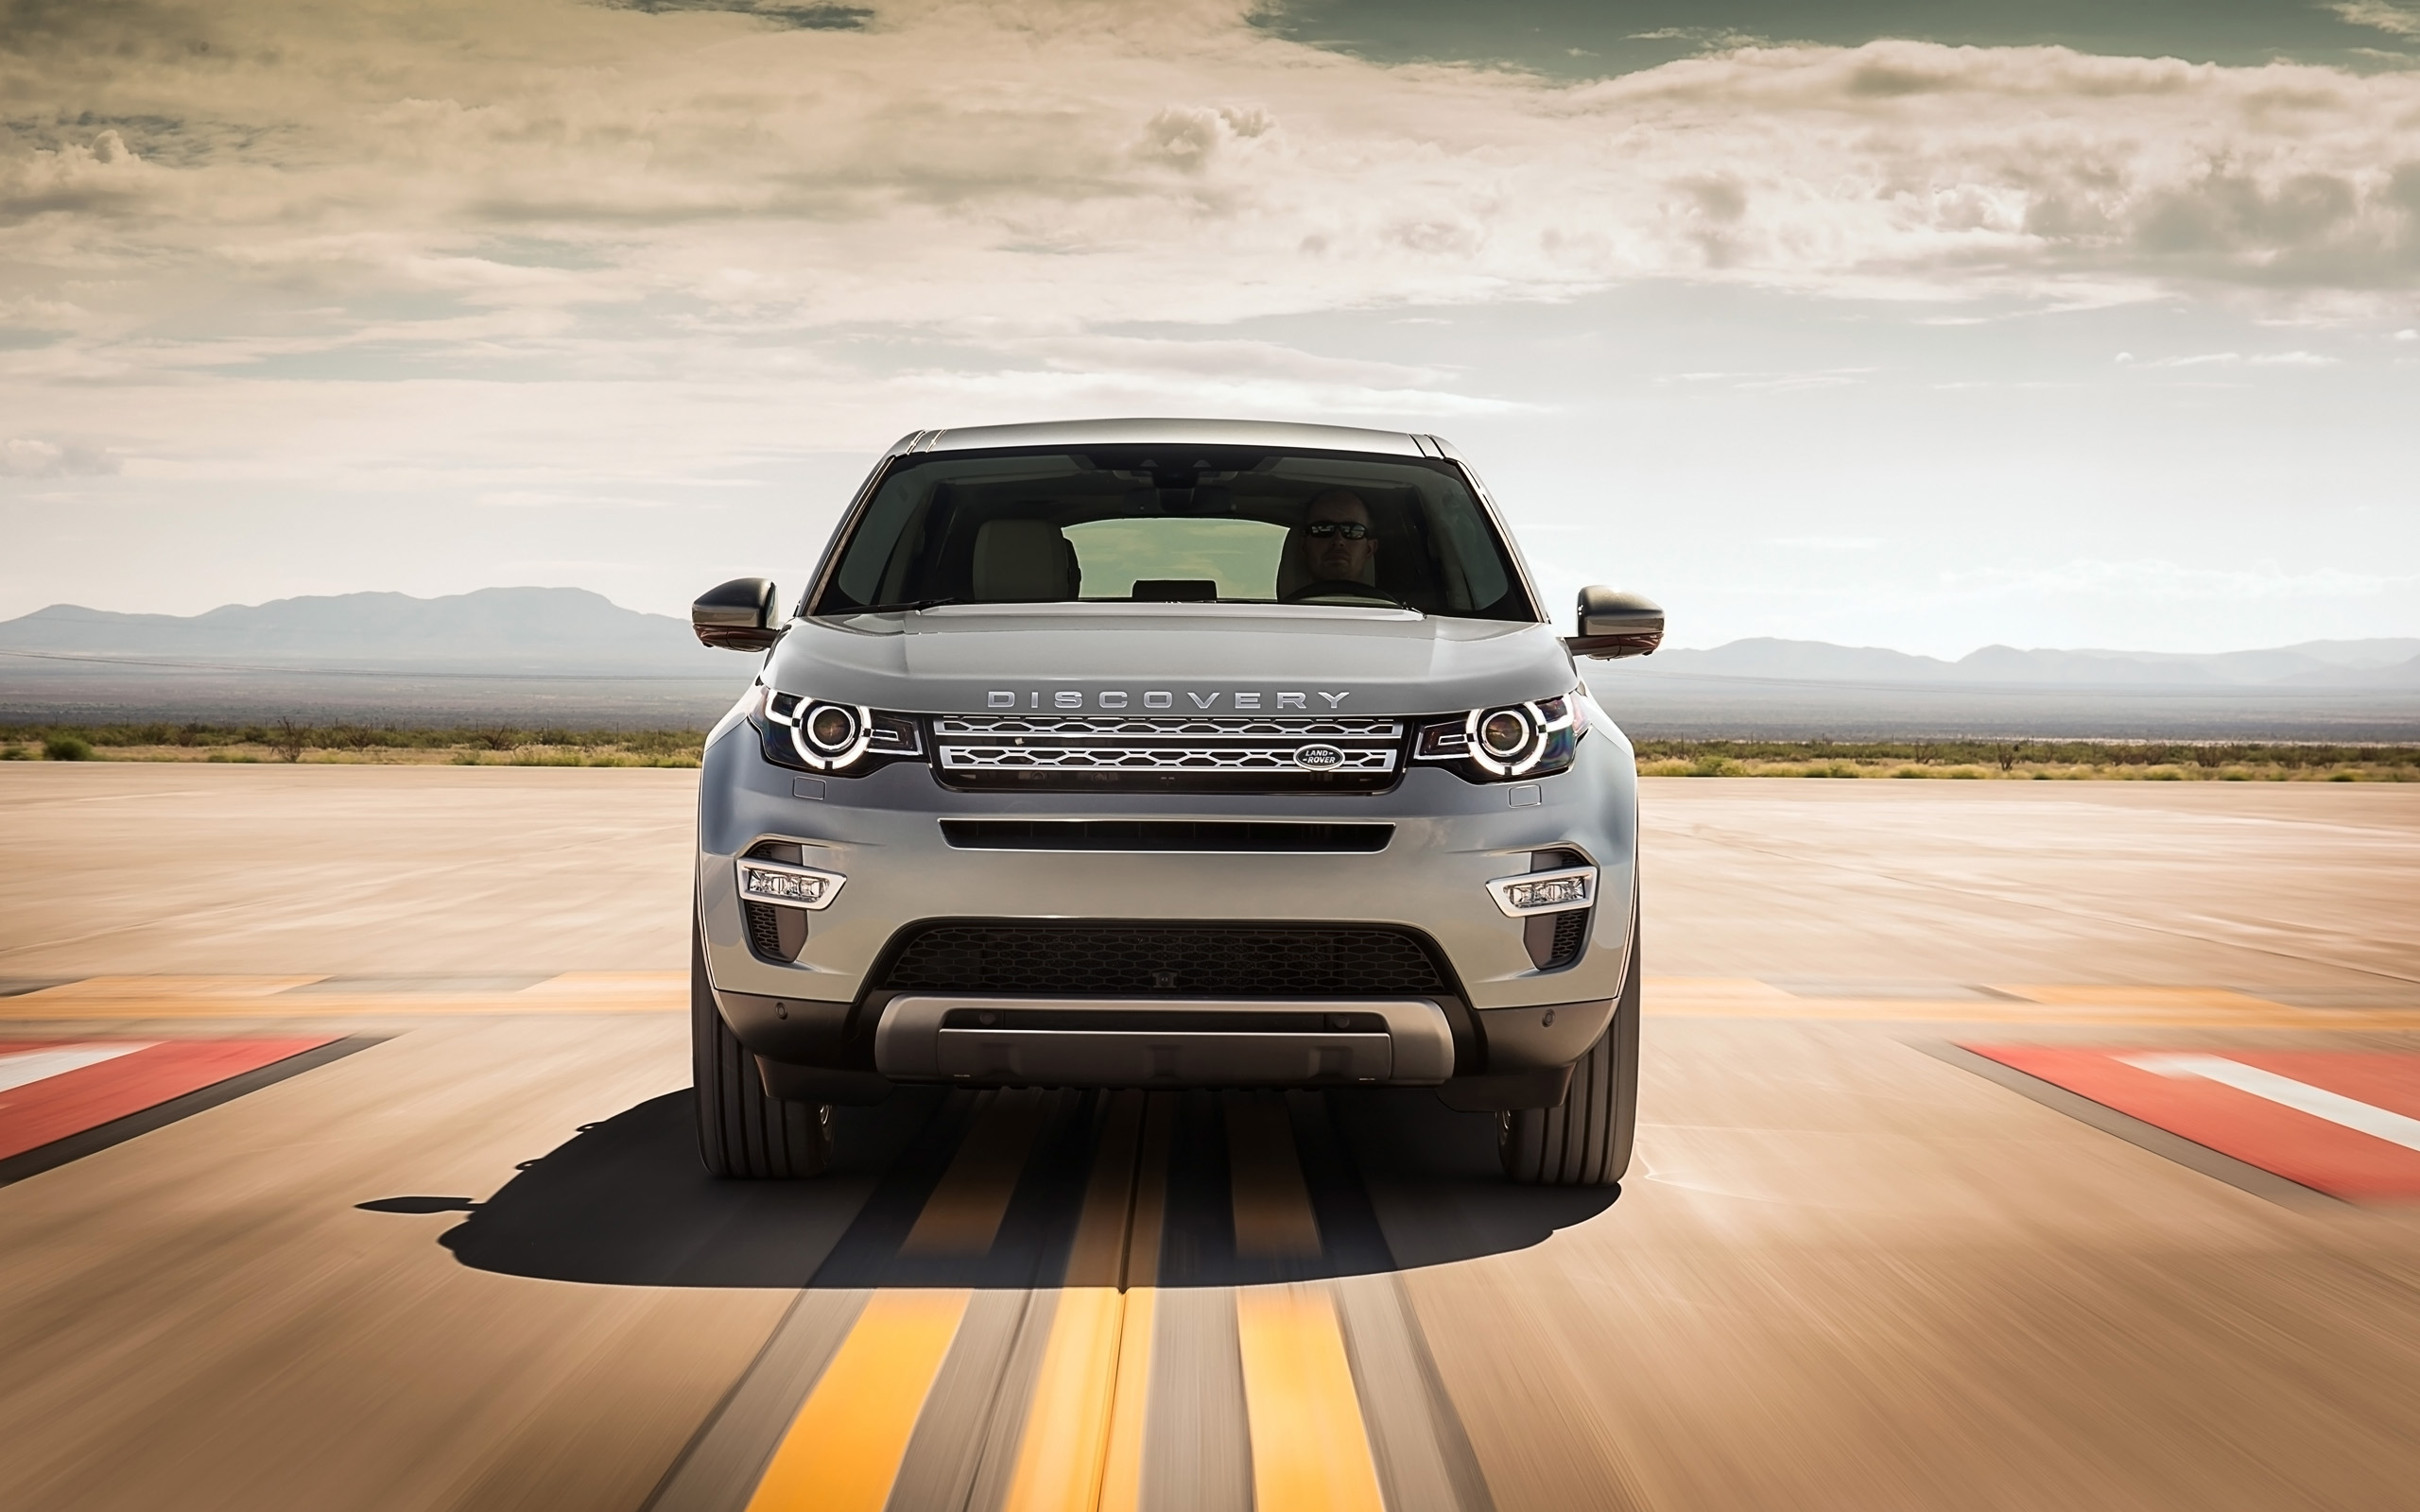 2560x1440 2015 land rover discovery sport spaceport front youtube